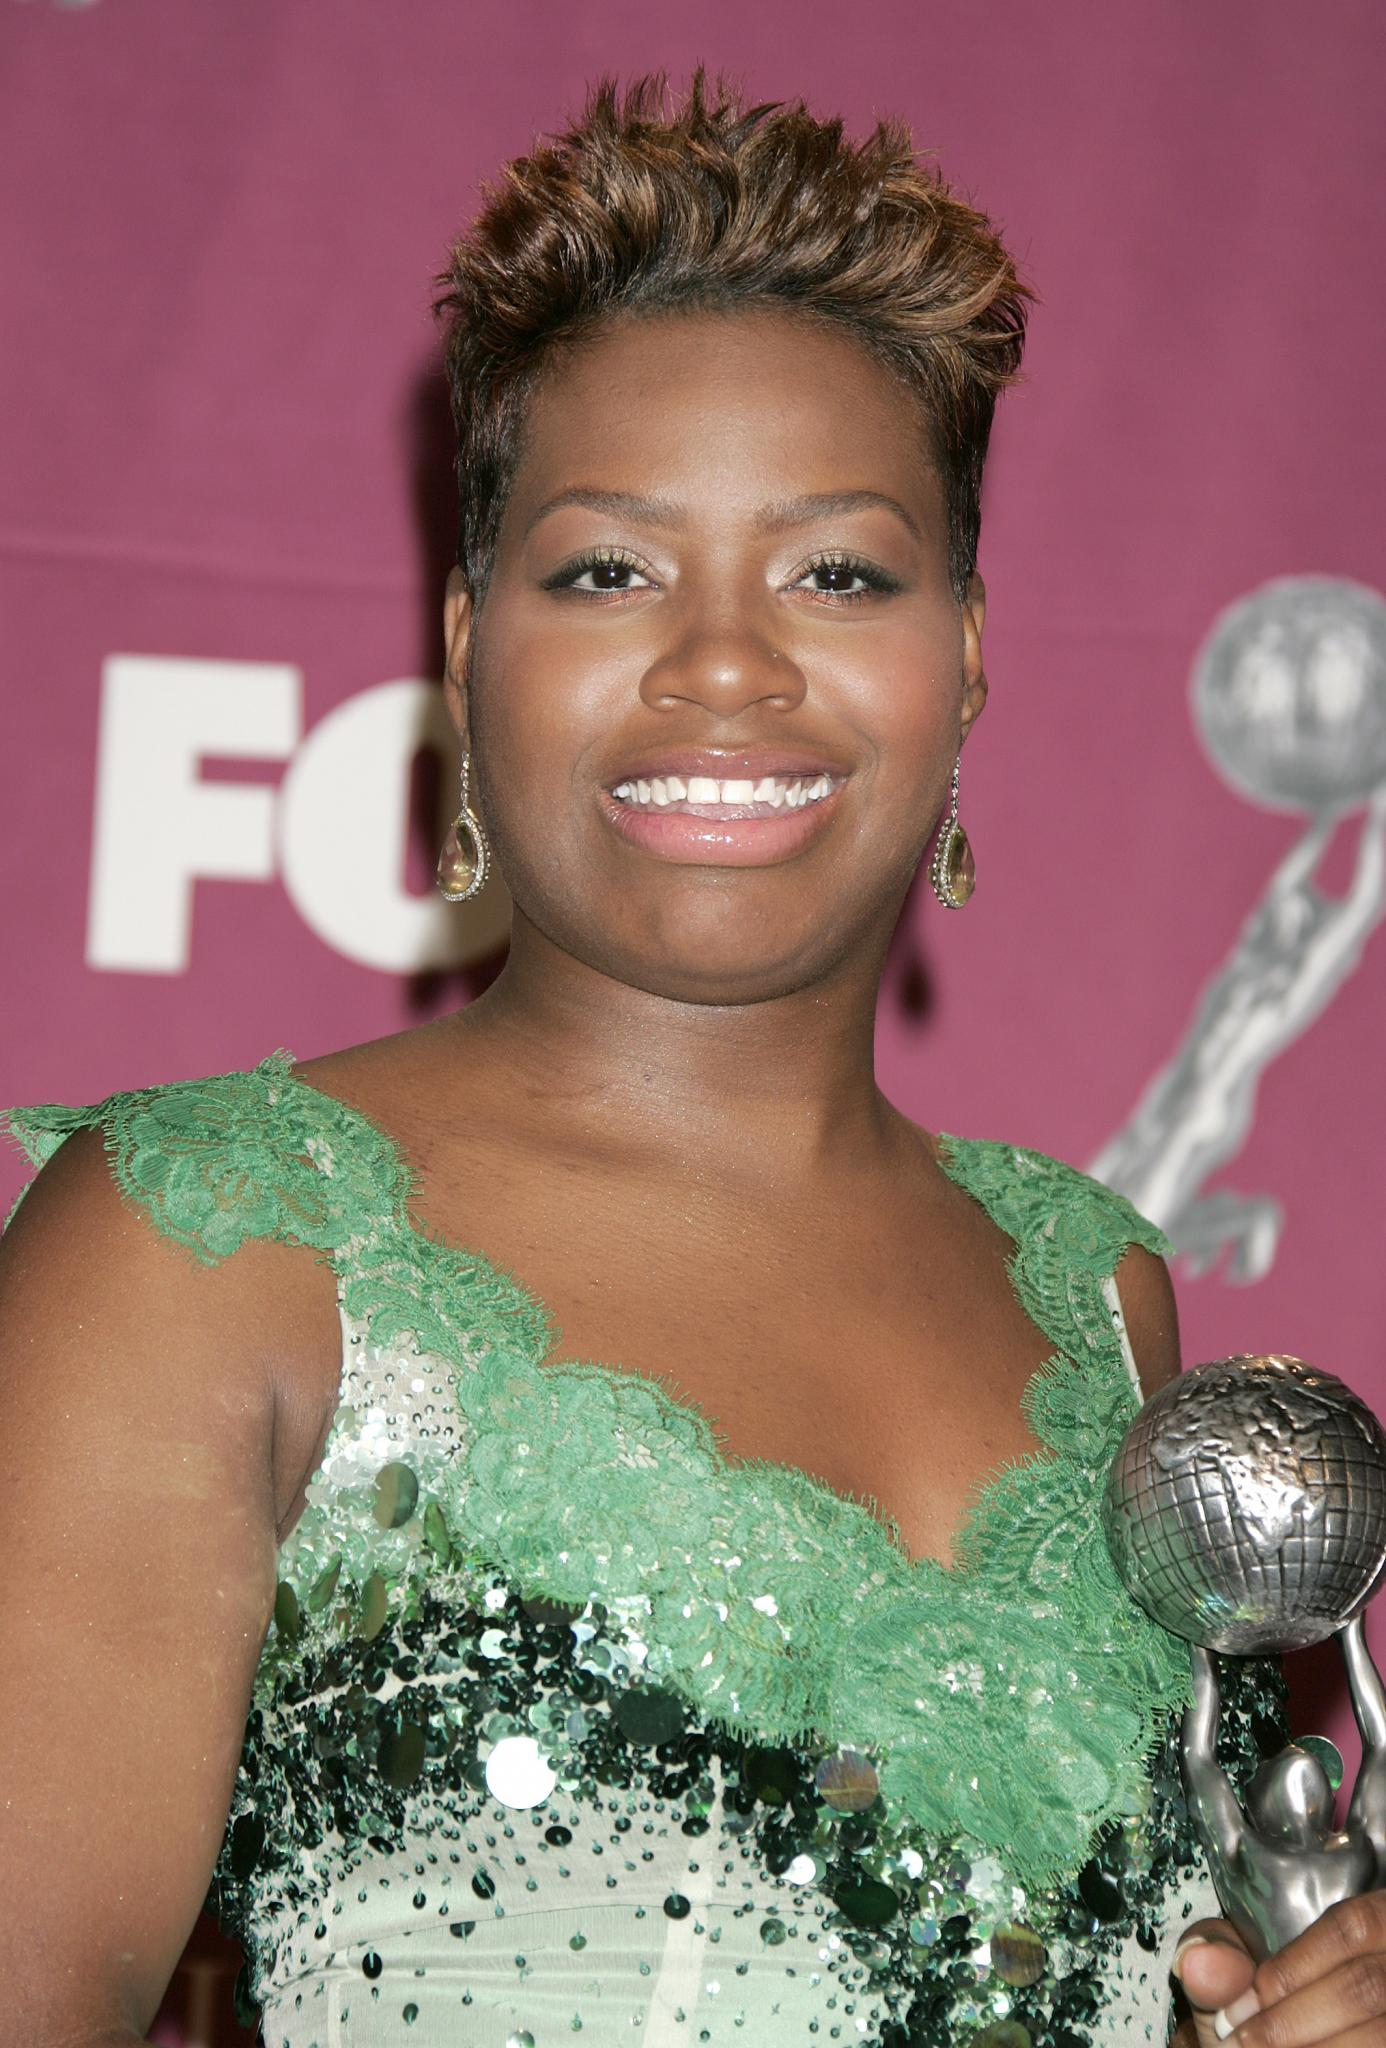 Hairstyle File: Fantasia\'s Head-Turning Hairstyles - Essence